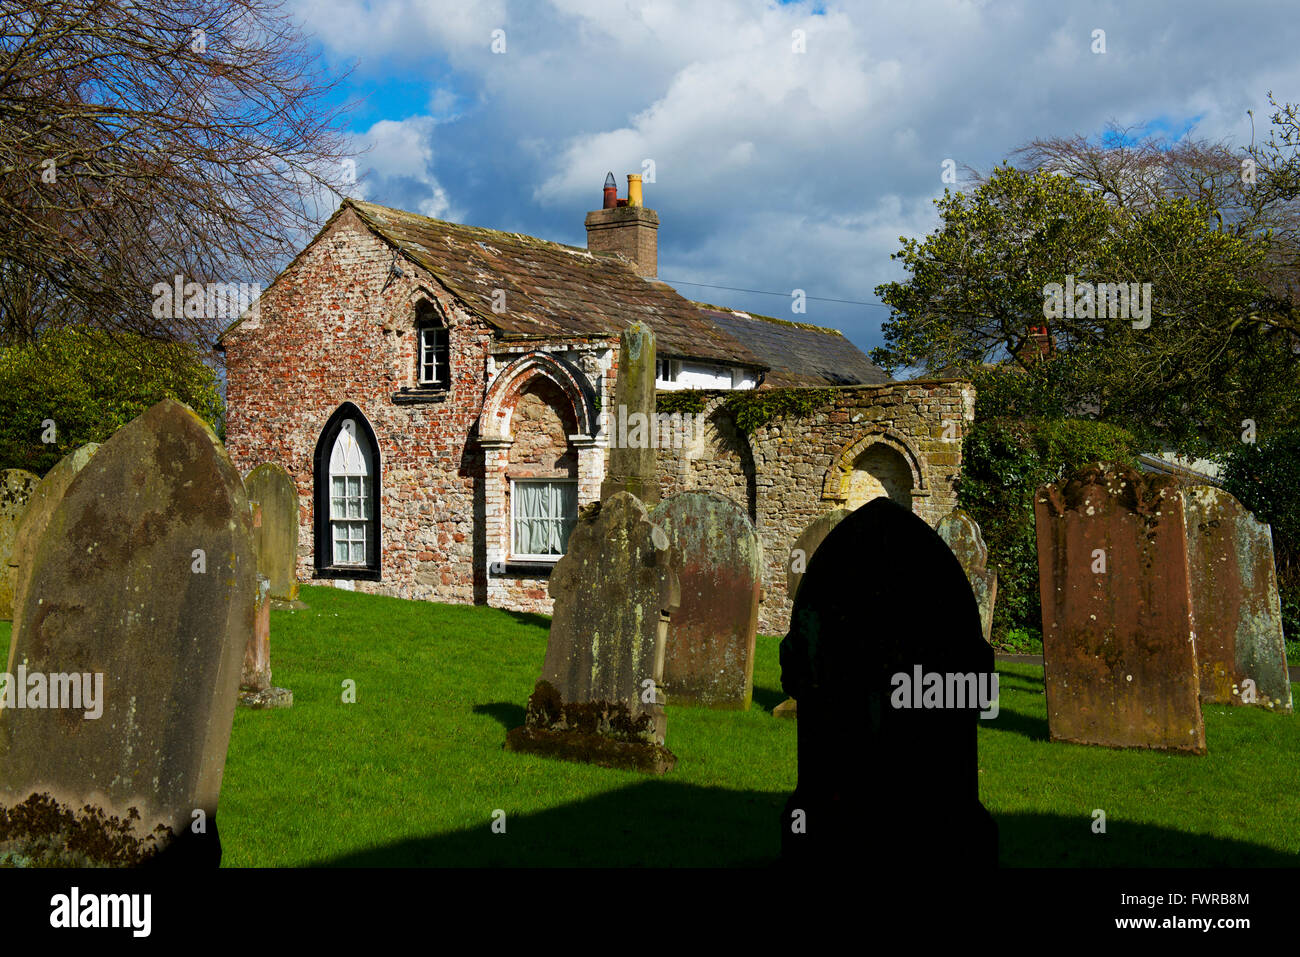 The old rectory next to St Michael's, a fortified church in the village of Burgh-by-Sands, North Cumbria, England - Stock Image